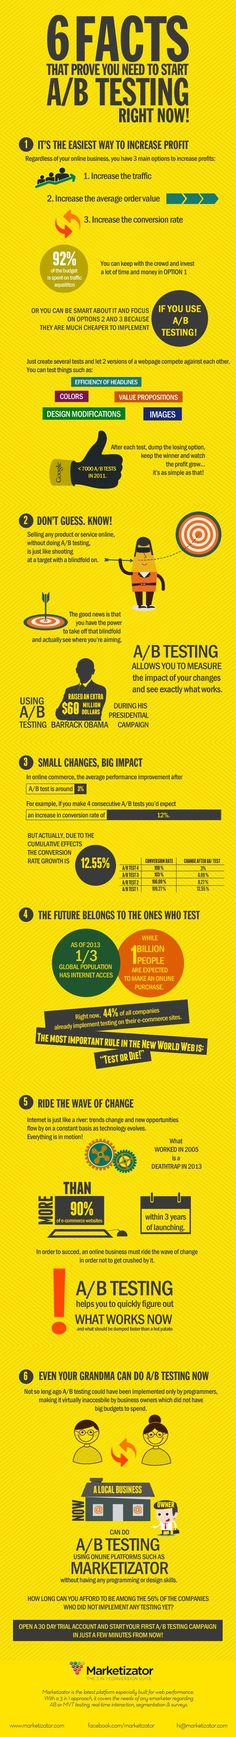 6 Facts that Prove You Need to Start A/B Testing Right Now! [Infographic]